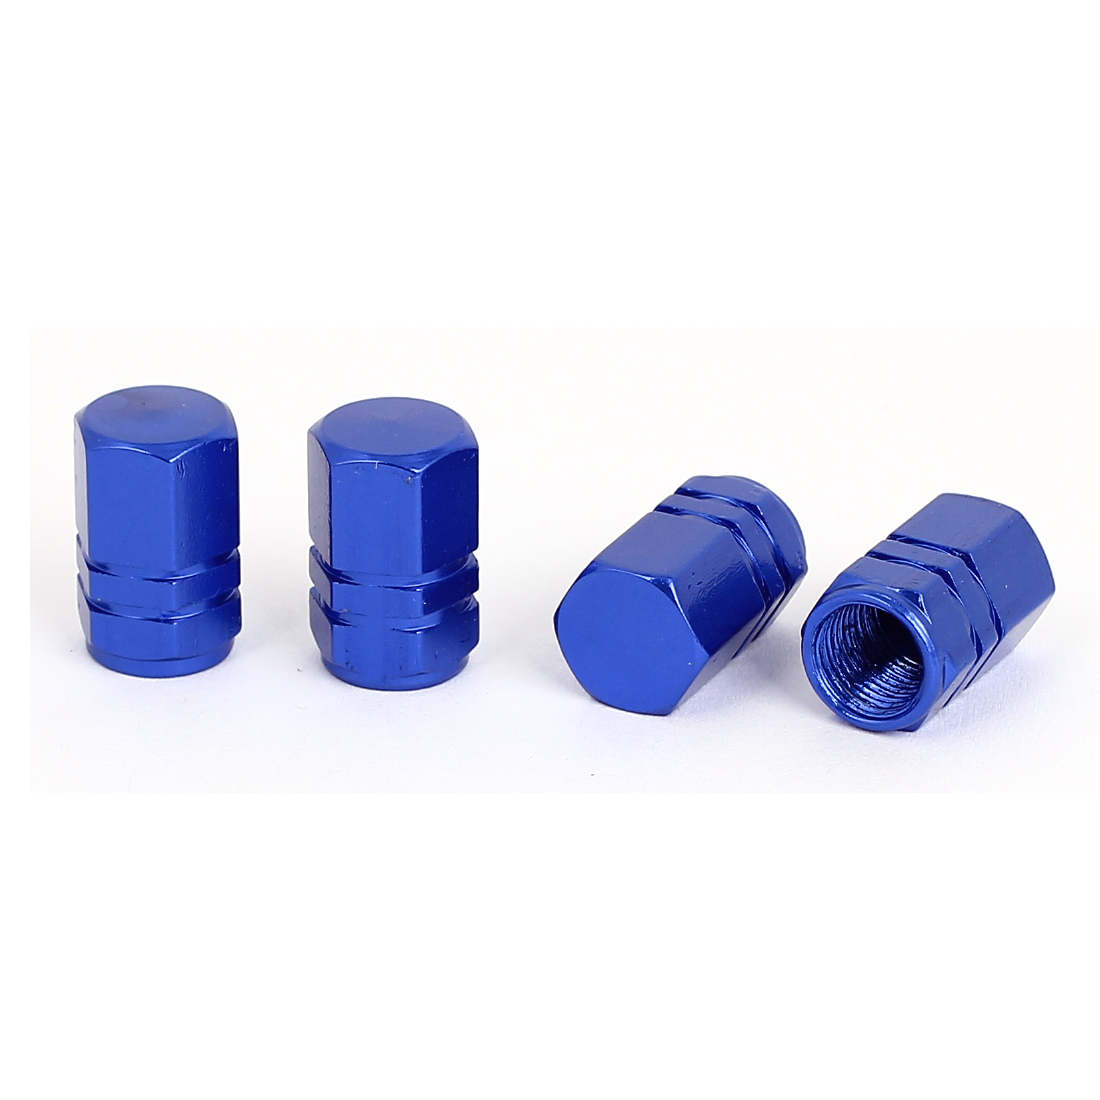 4 Pcs Dark Blue Metal Hexagon Auto Car Tyre Tire Valve Cap Cover